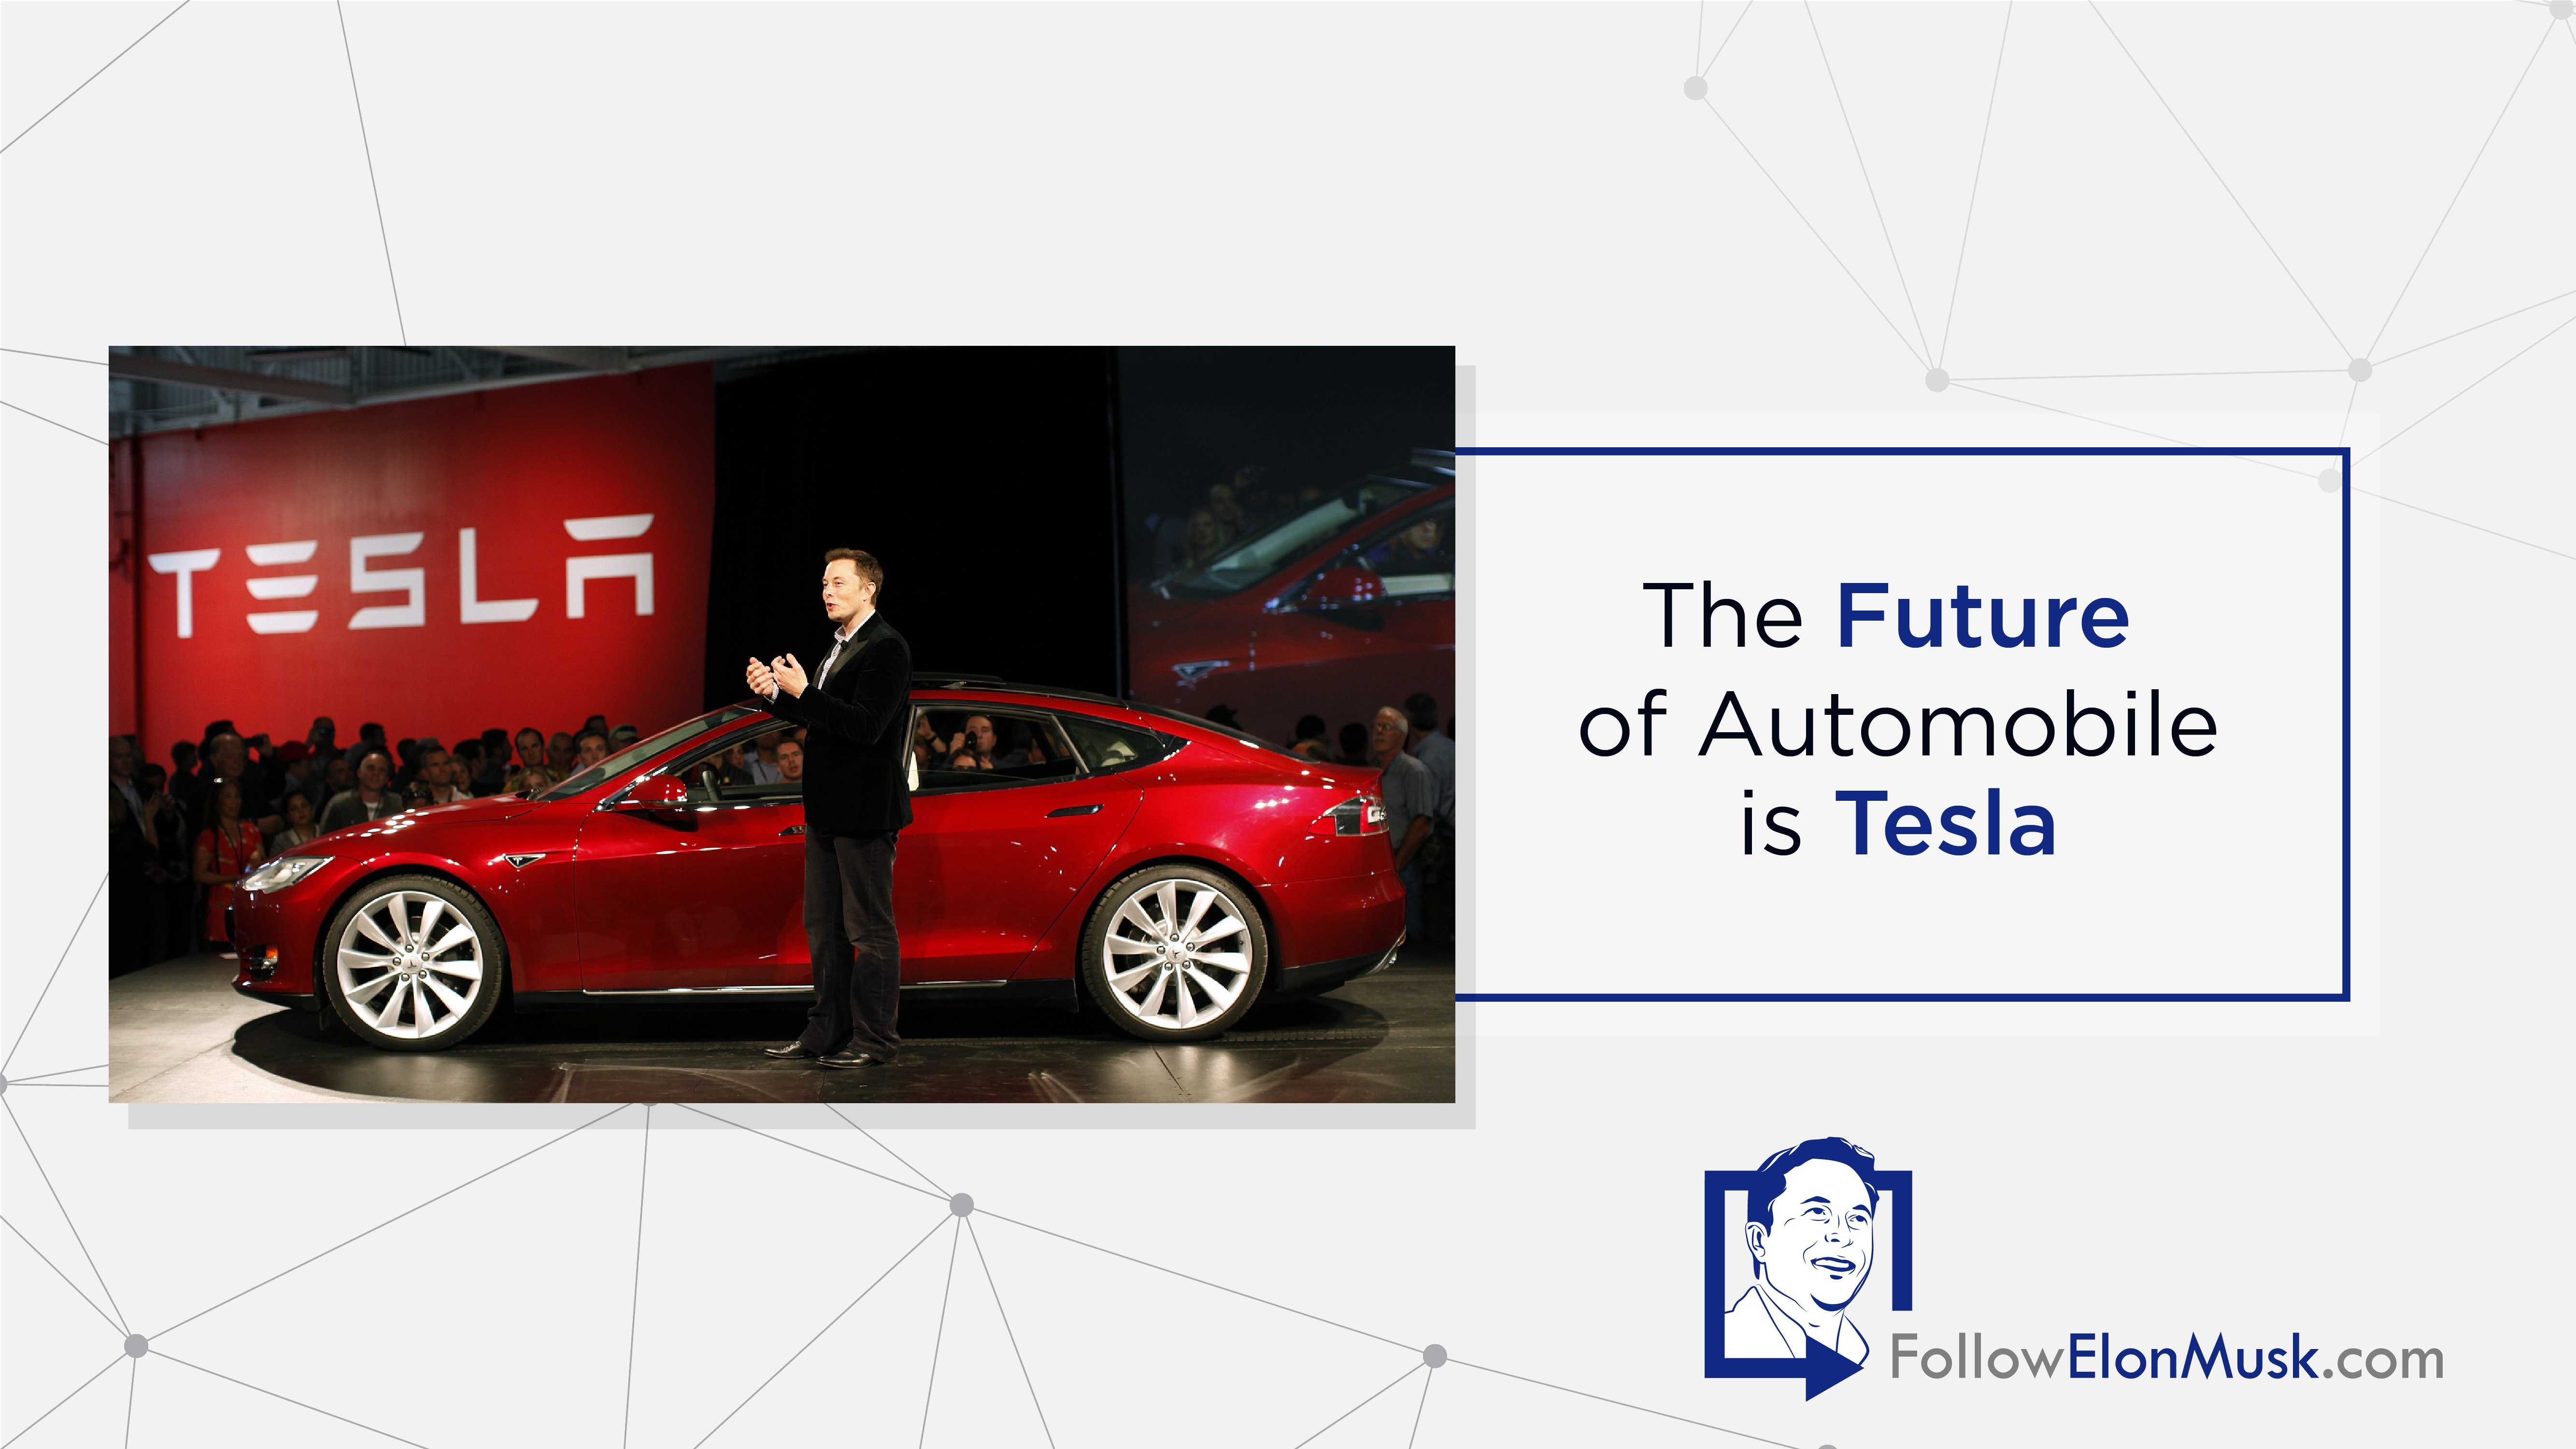 The Future of Automobile is Tesla